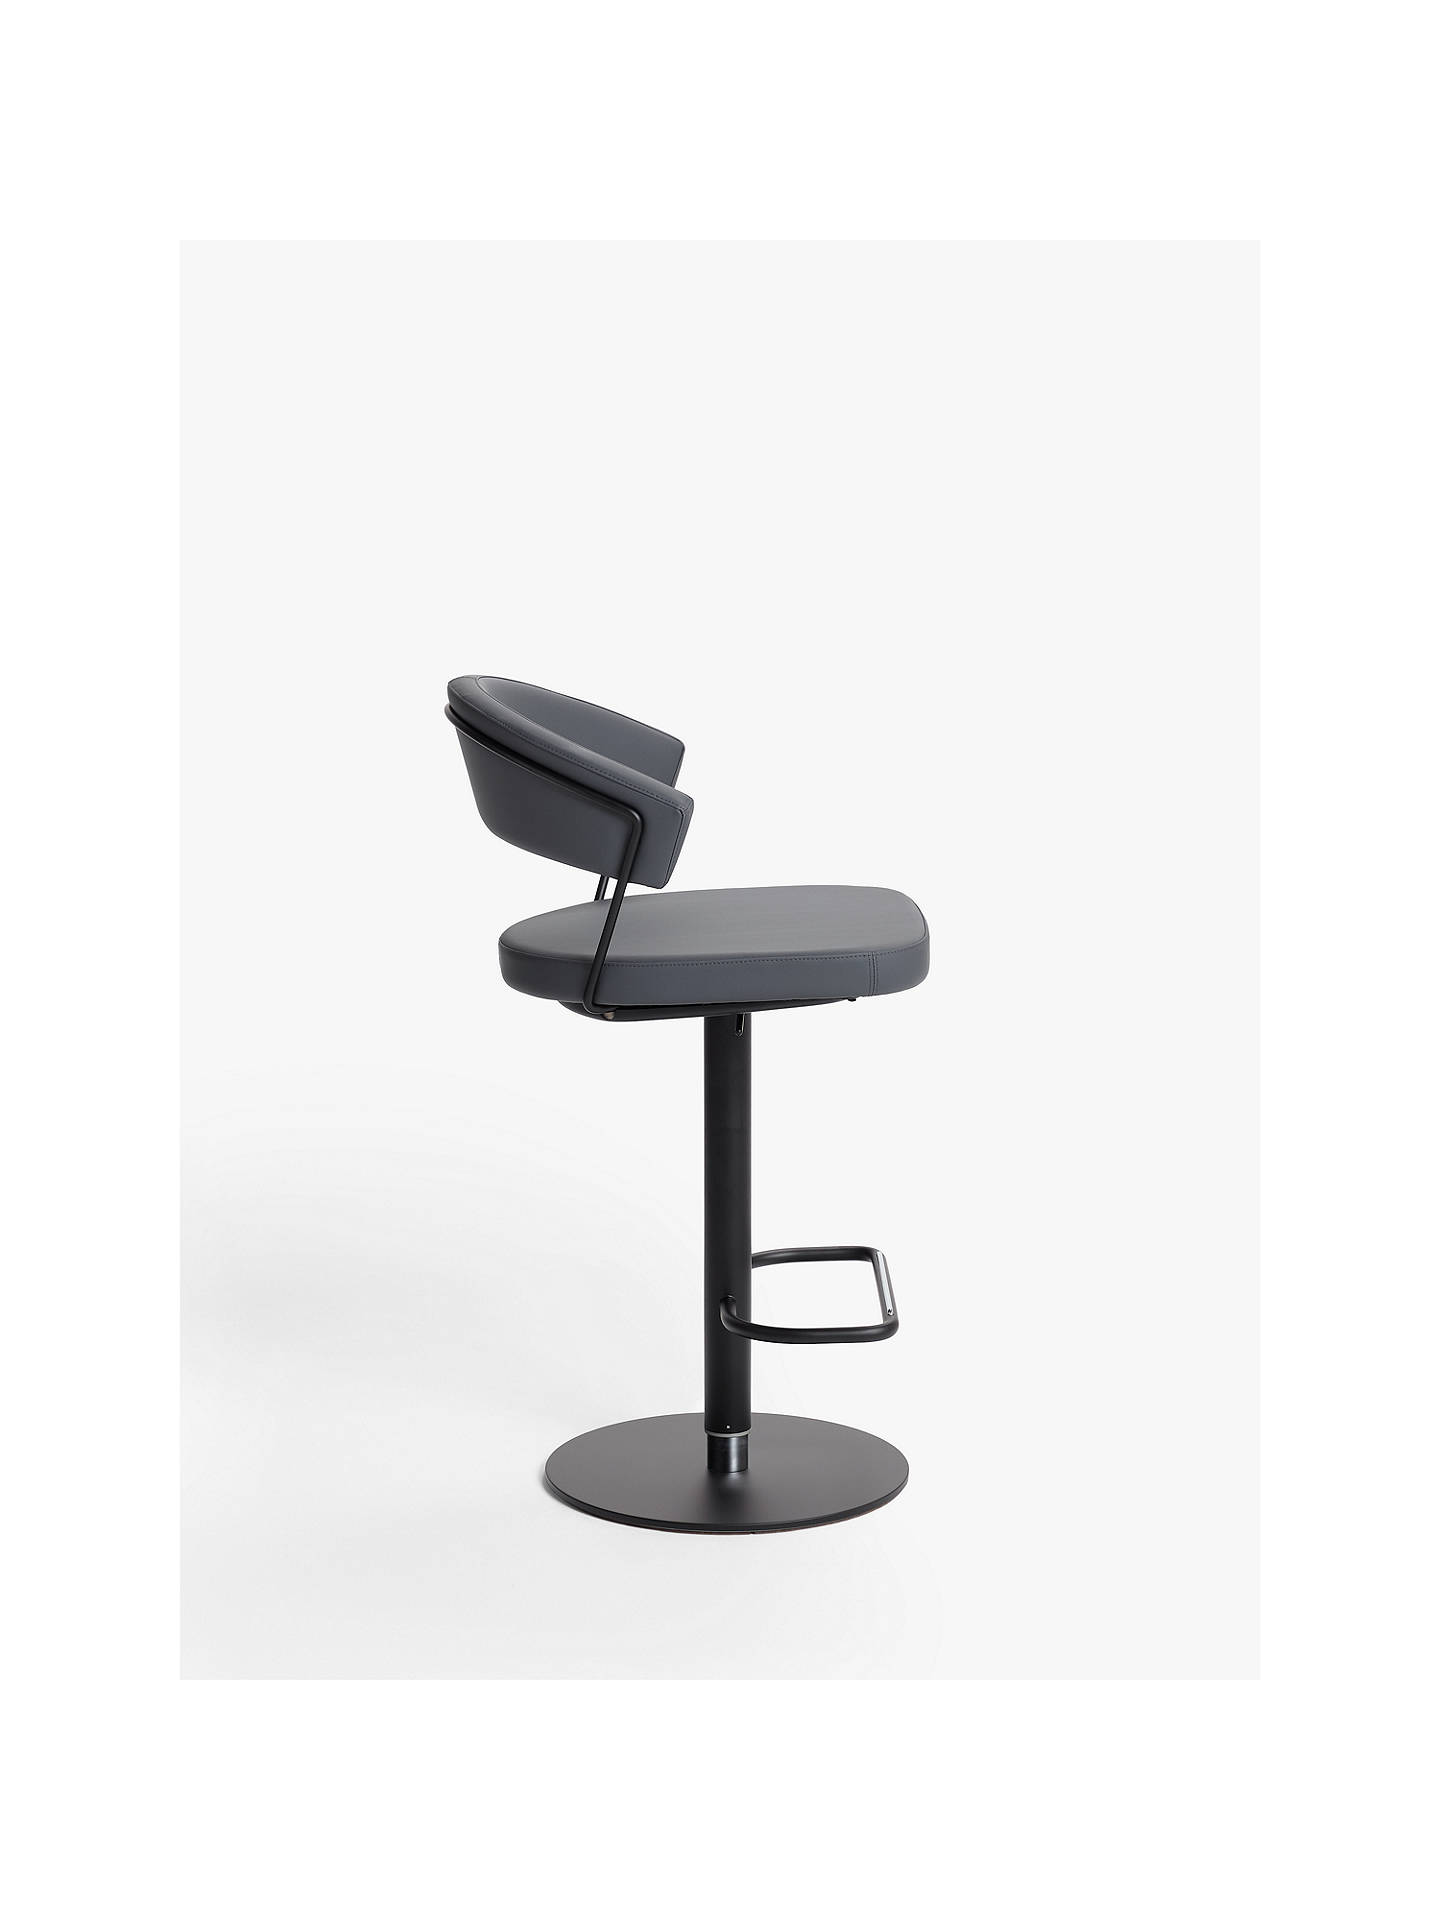 Buy Connubia by Calligaris New York Adjustable Gas Lift Bar Chair, Black Base/Dark Grey Online at johnlewis.com